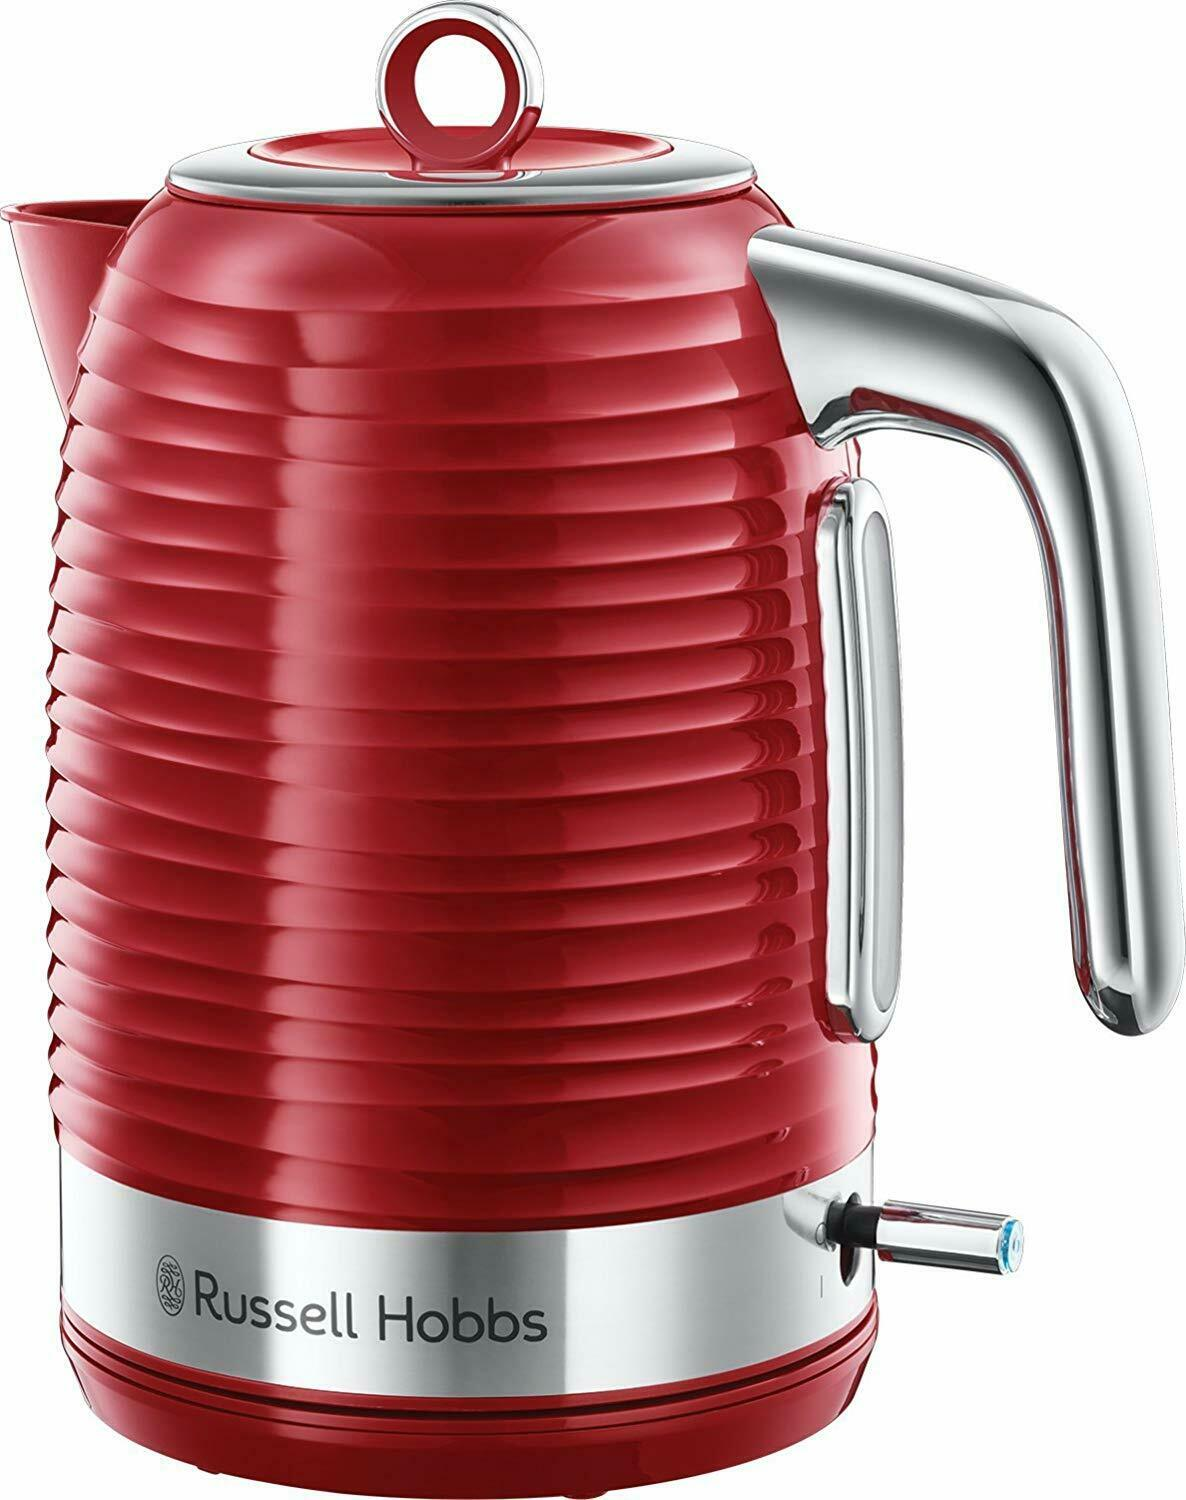 Russell Hobbs 18941 Colours Kettle 3kw